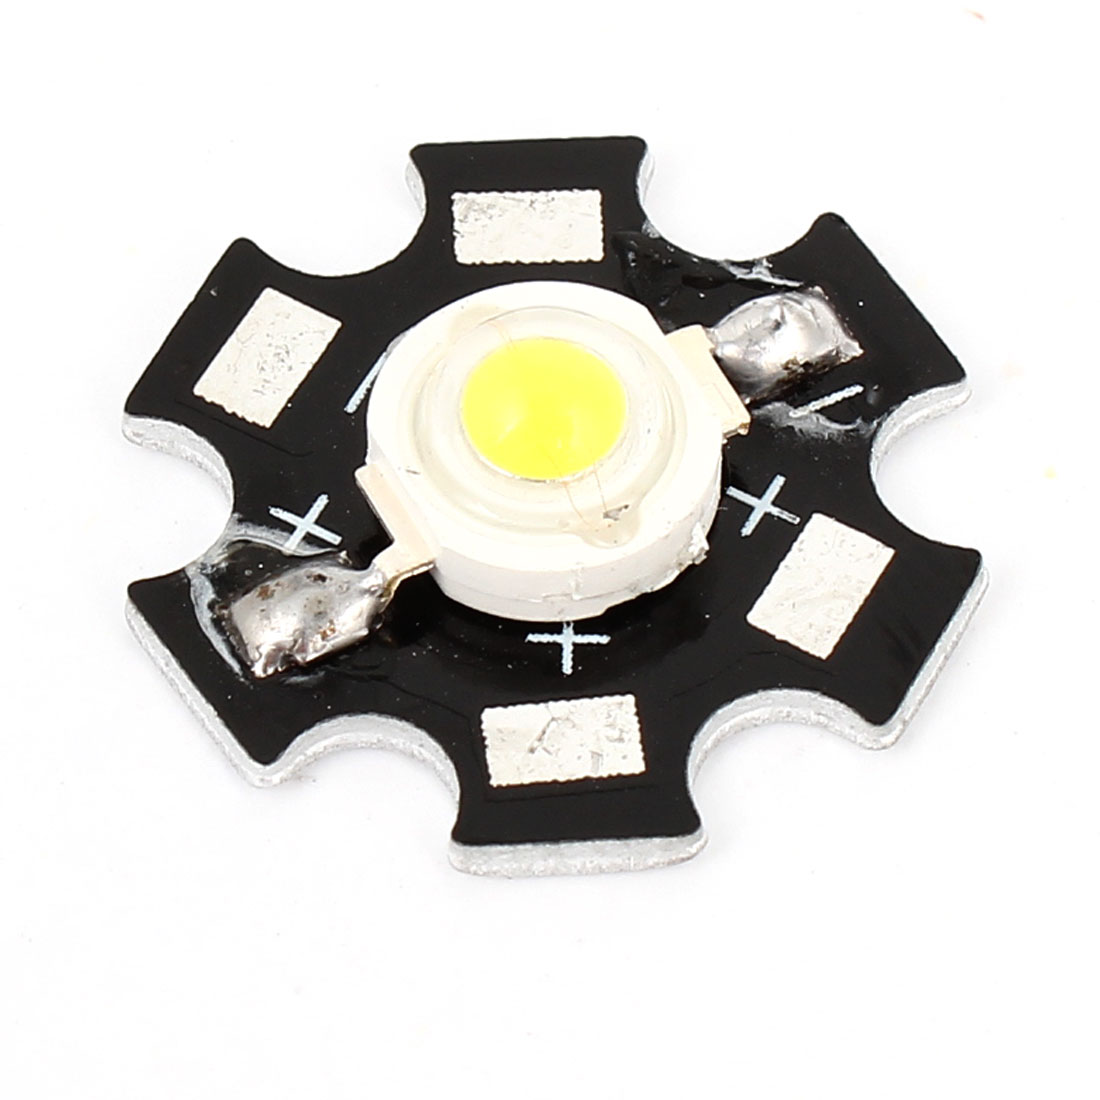 3W 190-210LM White LED Light Saving Energy Star Base Lamp Bead Emitter